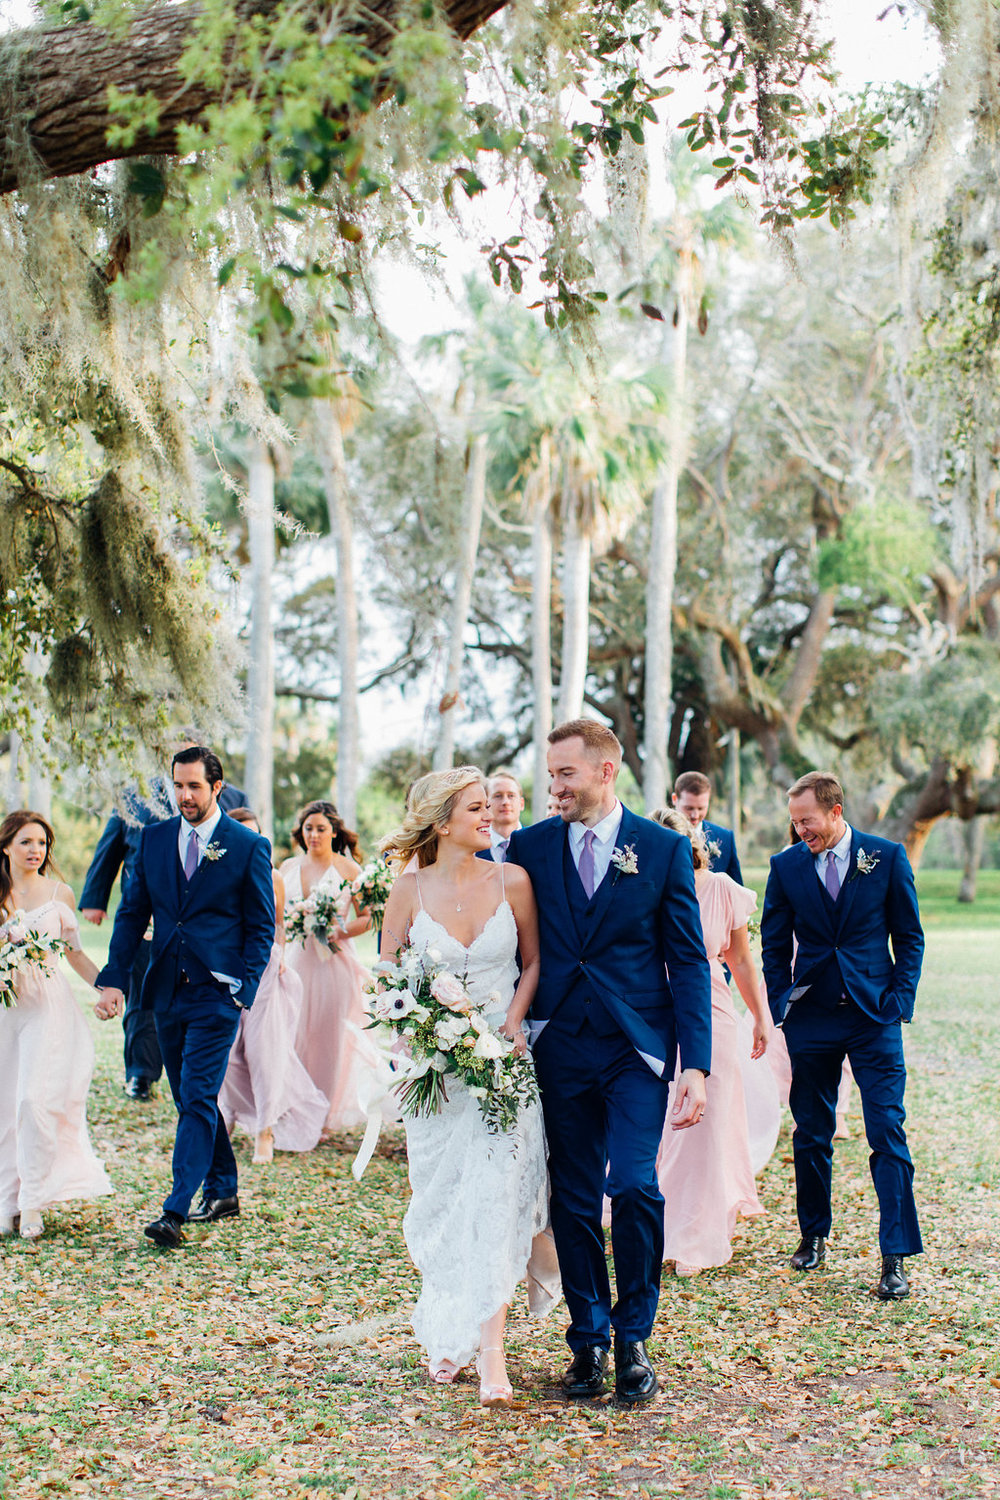 ivory-and-beau-bridal-boutique-christina-karst-photography-the-ribault-club-jacksonville-florida-wedding-jacksonville-wedding-planner-14.jpg